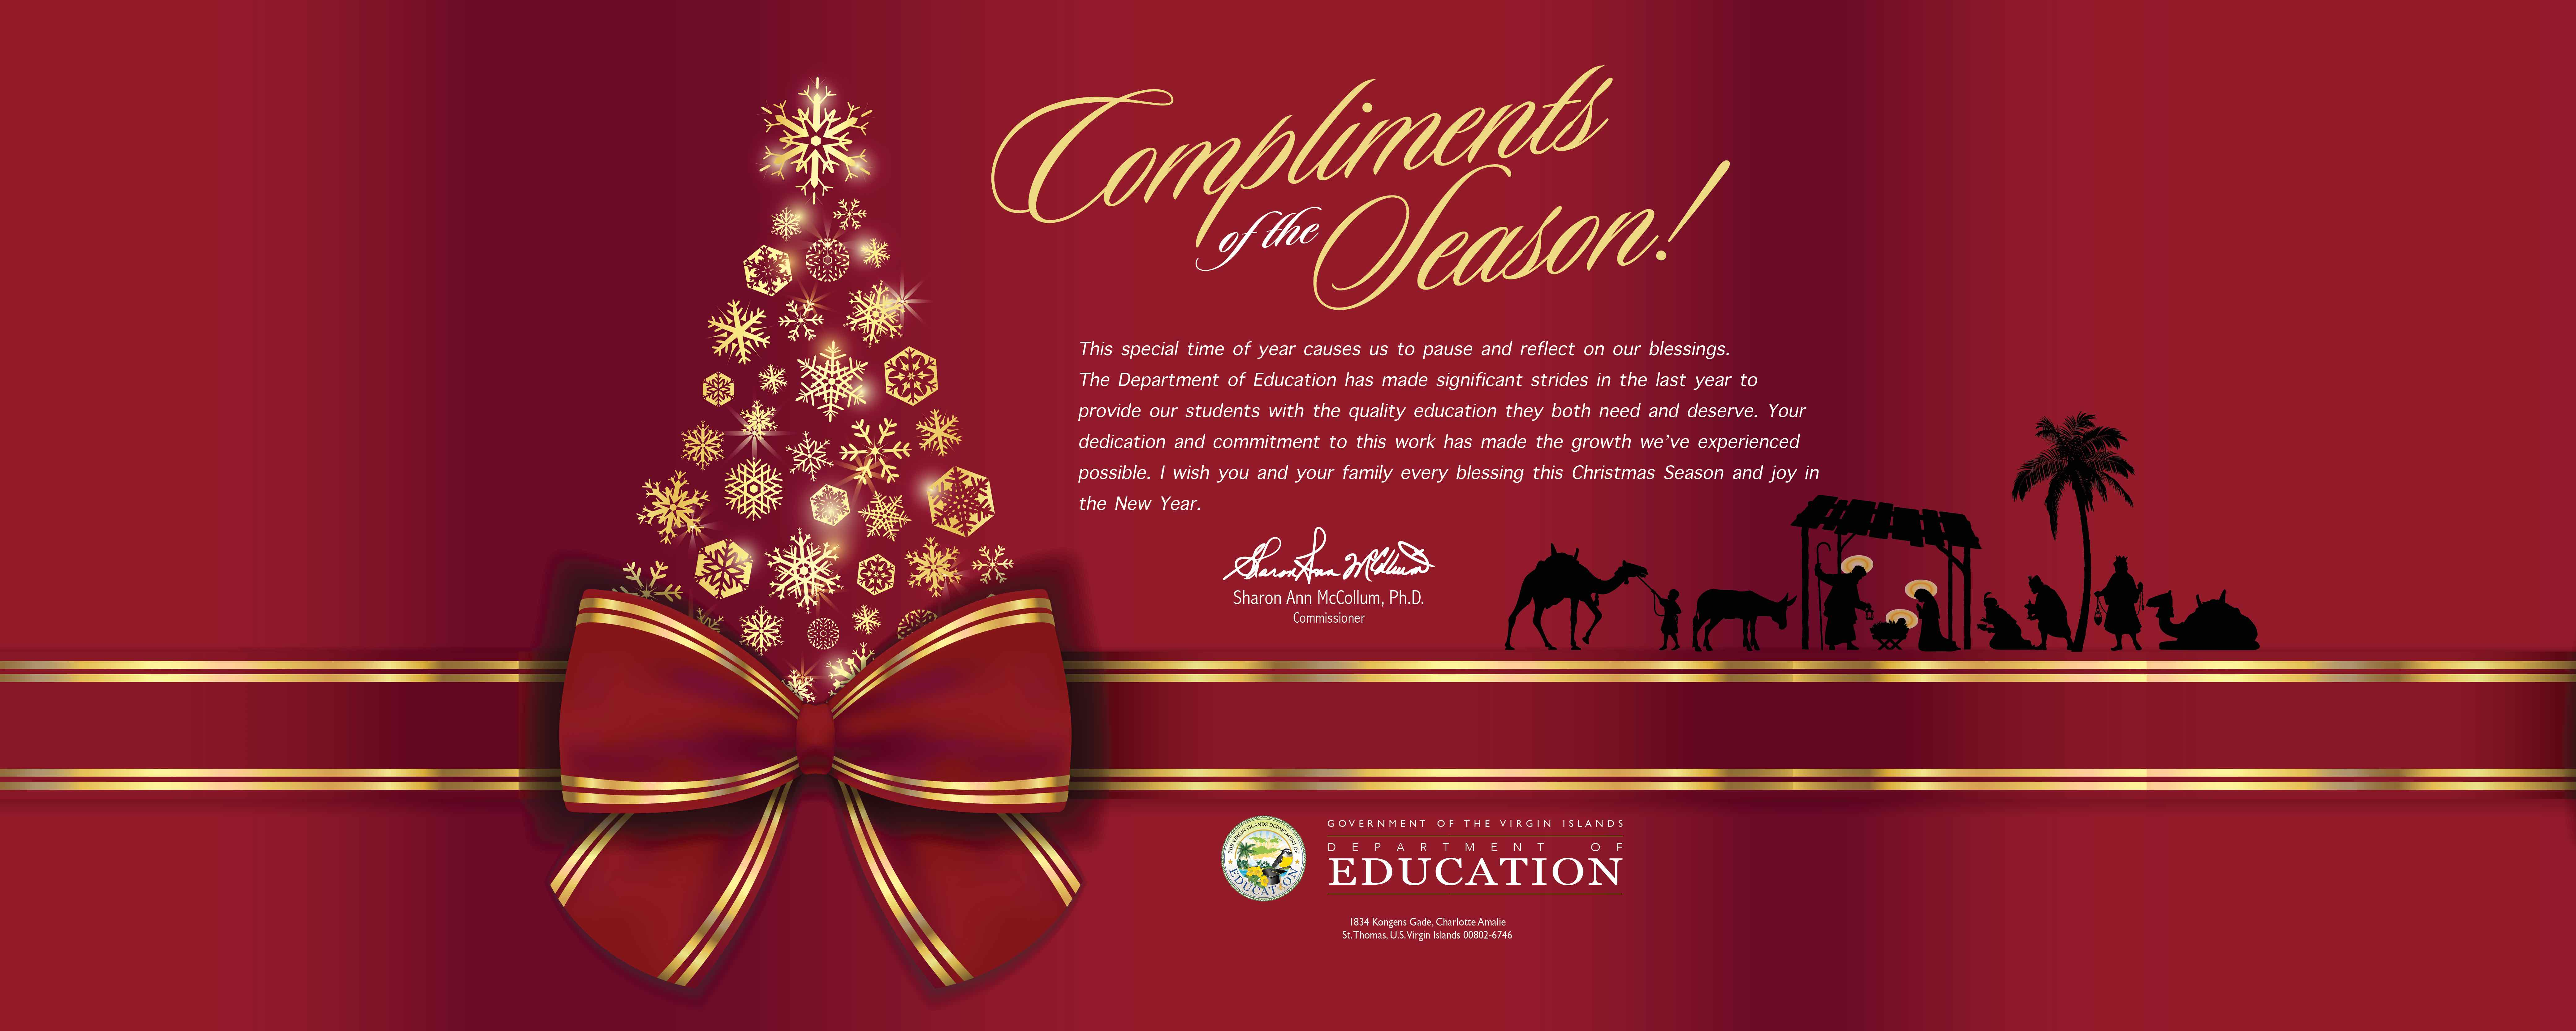 Seasons greetings from commissioner mccollum m4hsunfo